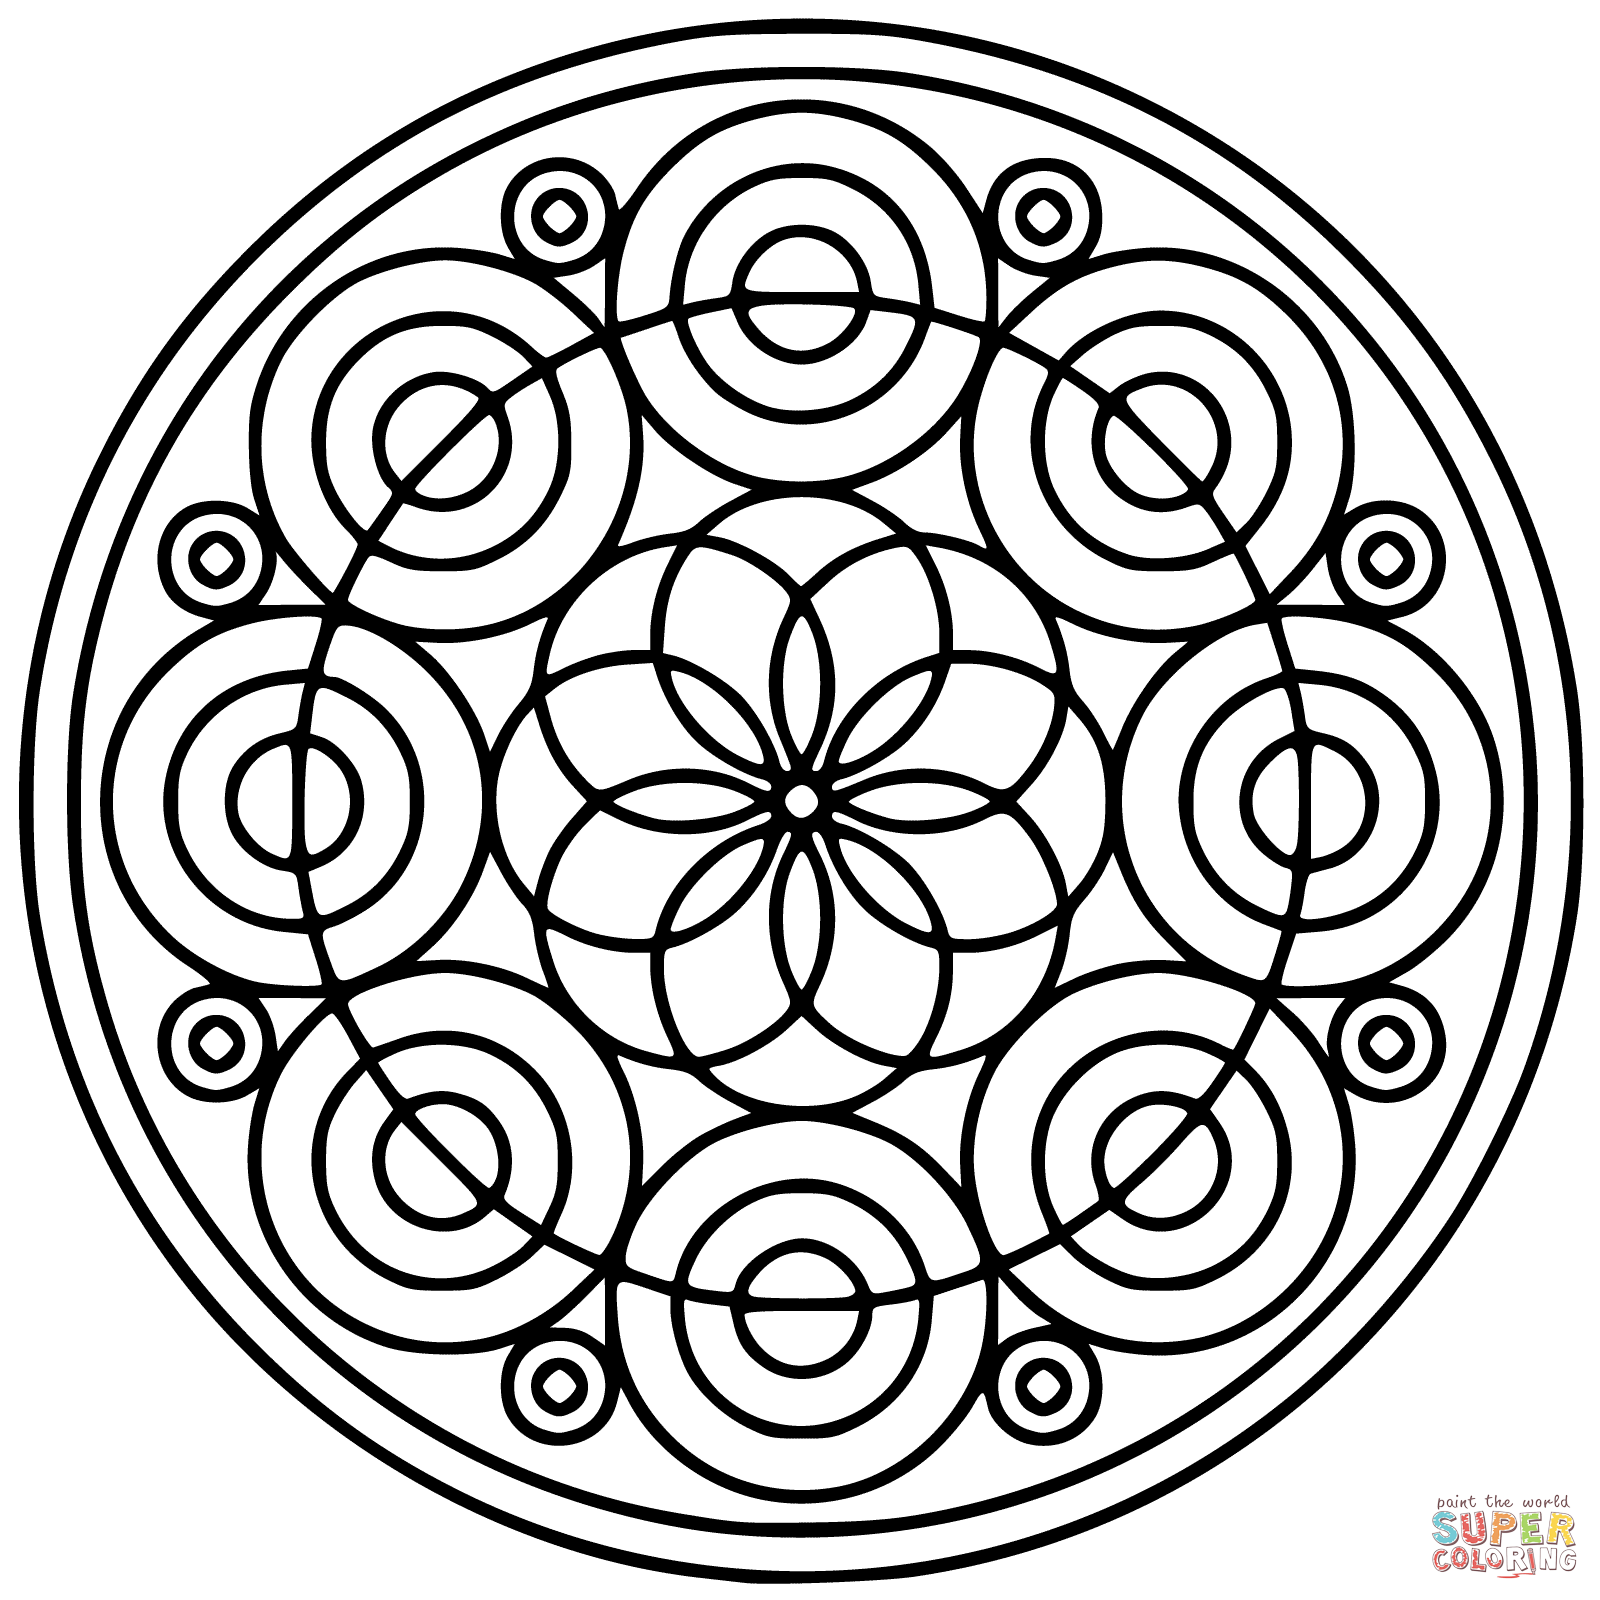 spiral pictures to color spiral coloring download spiral coloring for free 2019 pictures spiral color to